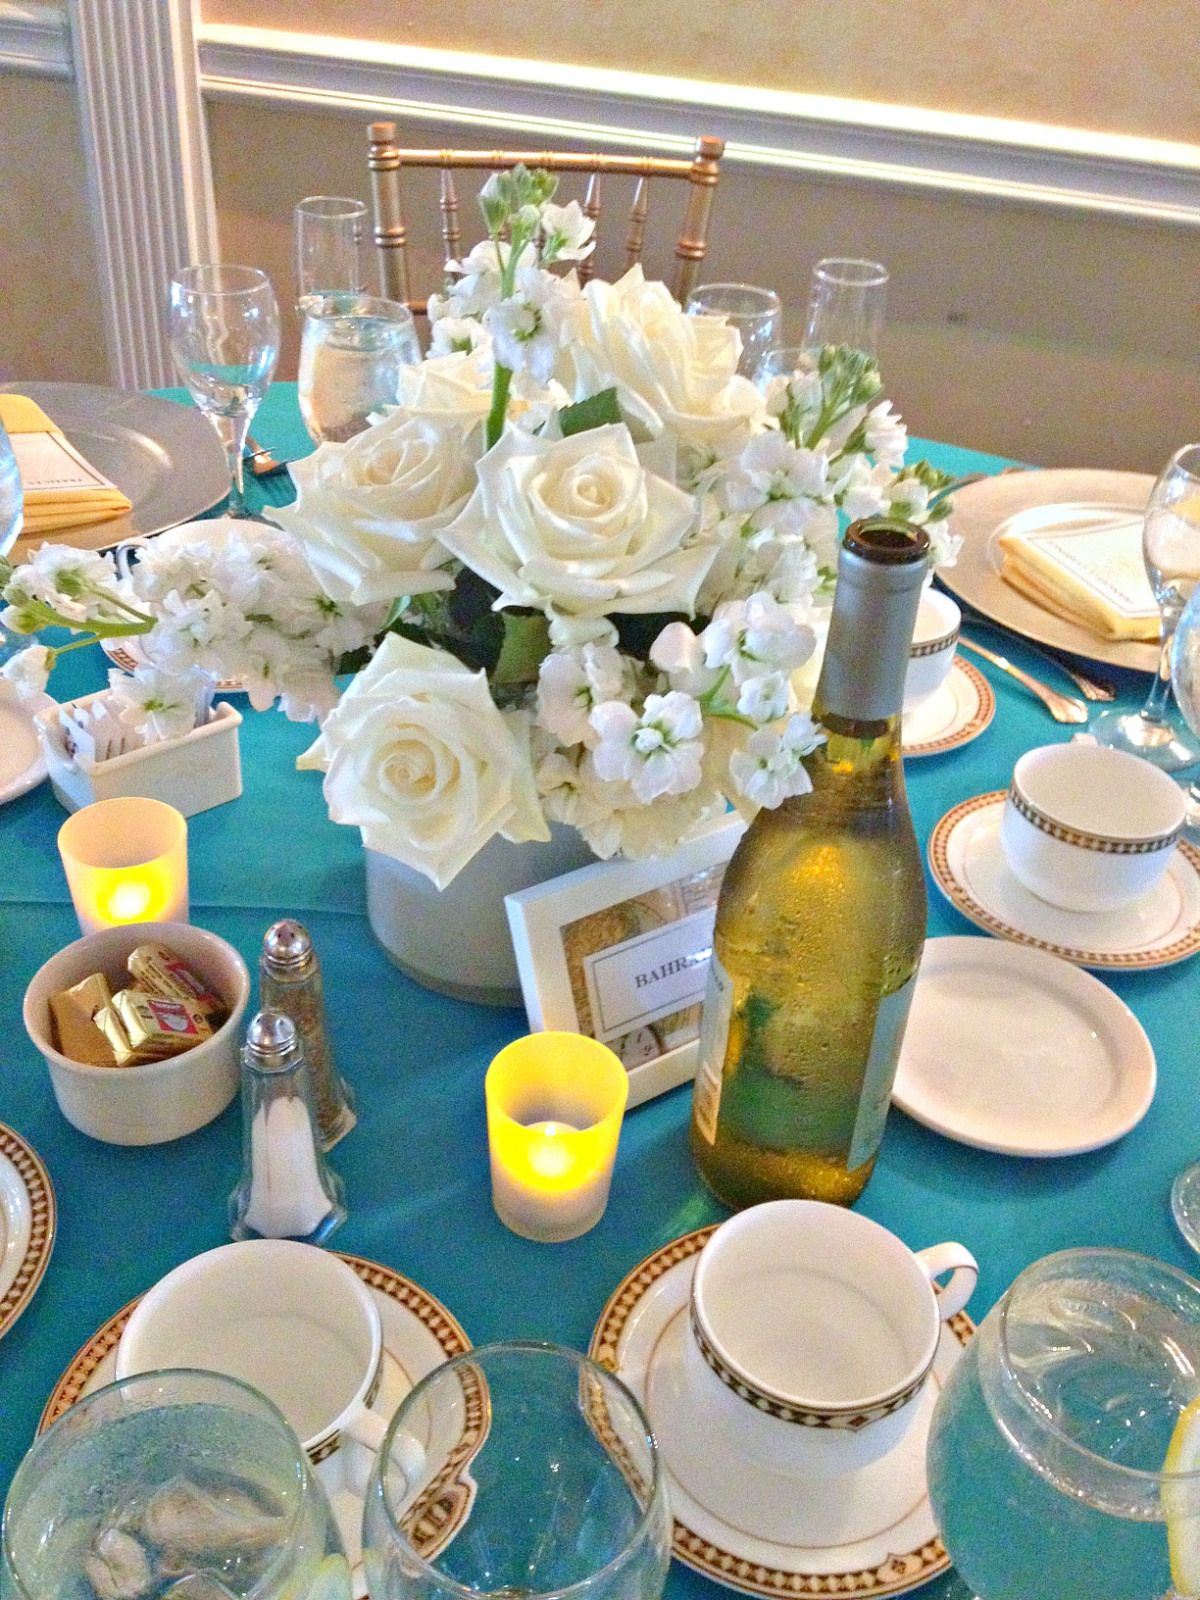 Gorgeous White Centerpieces Pop On The Sleek Turquoise Linens